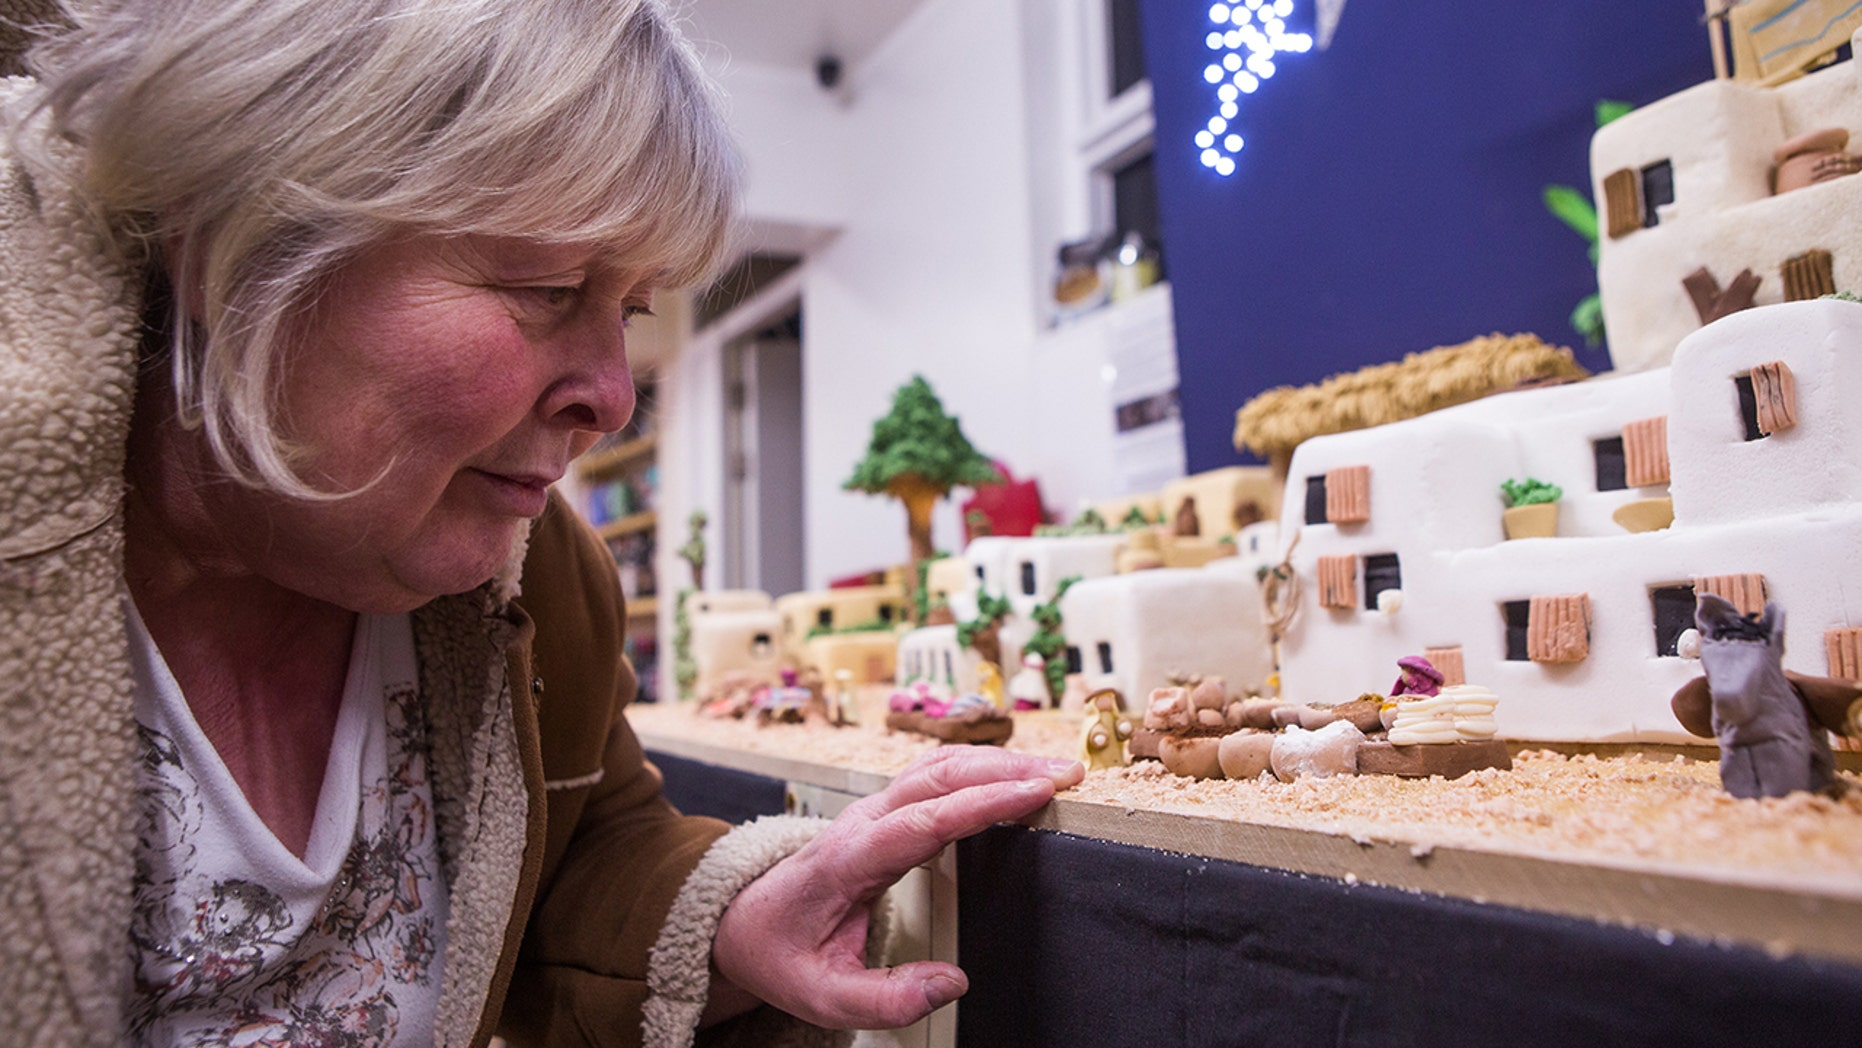 British baker Lynn Nolan worked six months to create a stunning replica of Bethlehem for a charity auction.